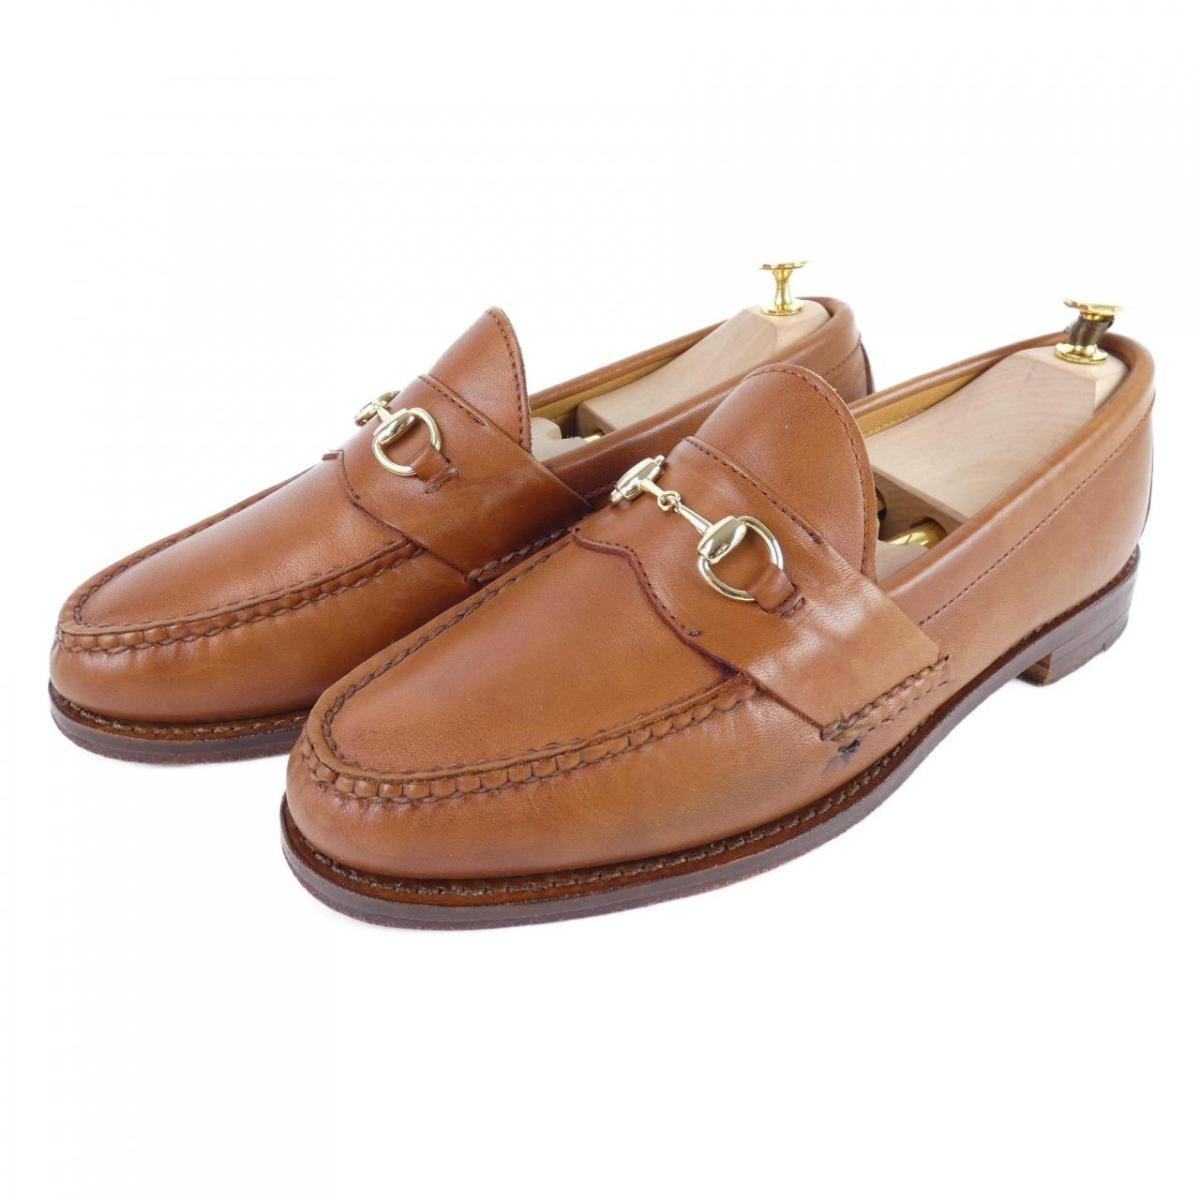 OLD PORT MOCCASIN シューズ【中古】